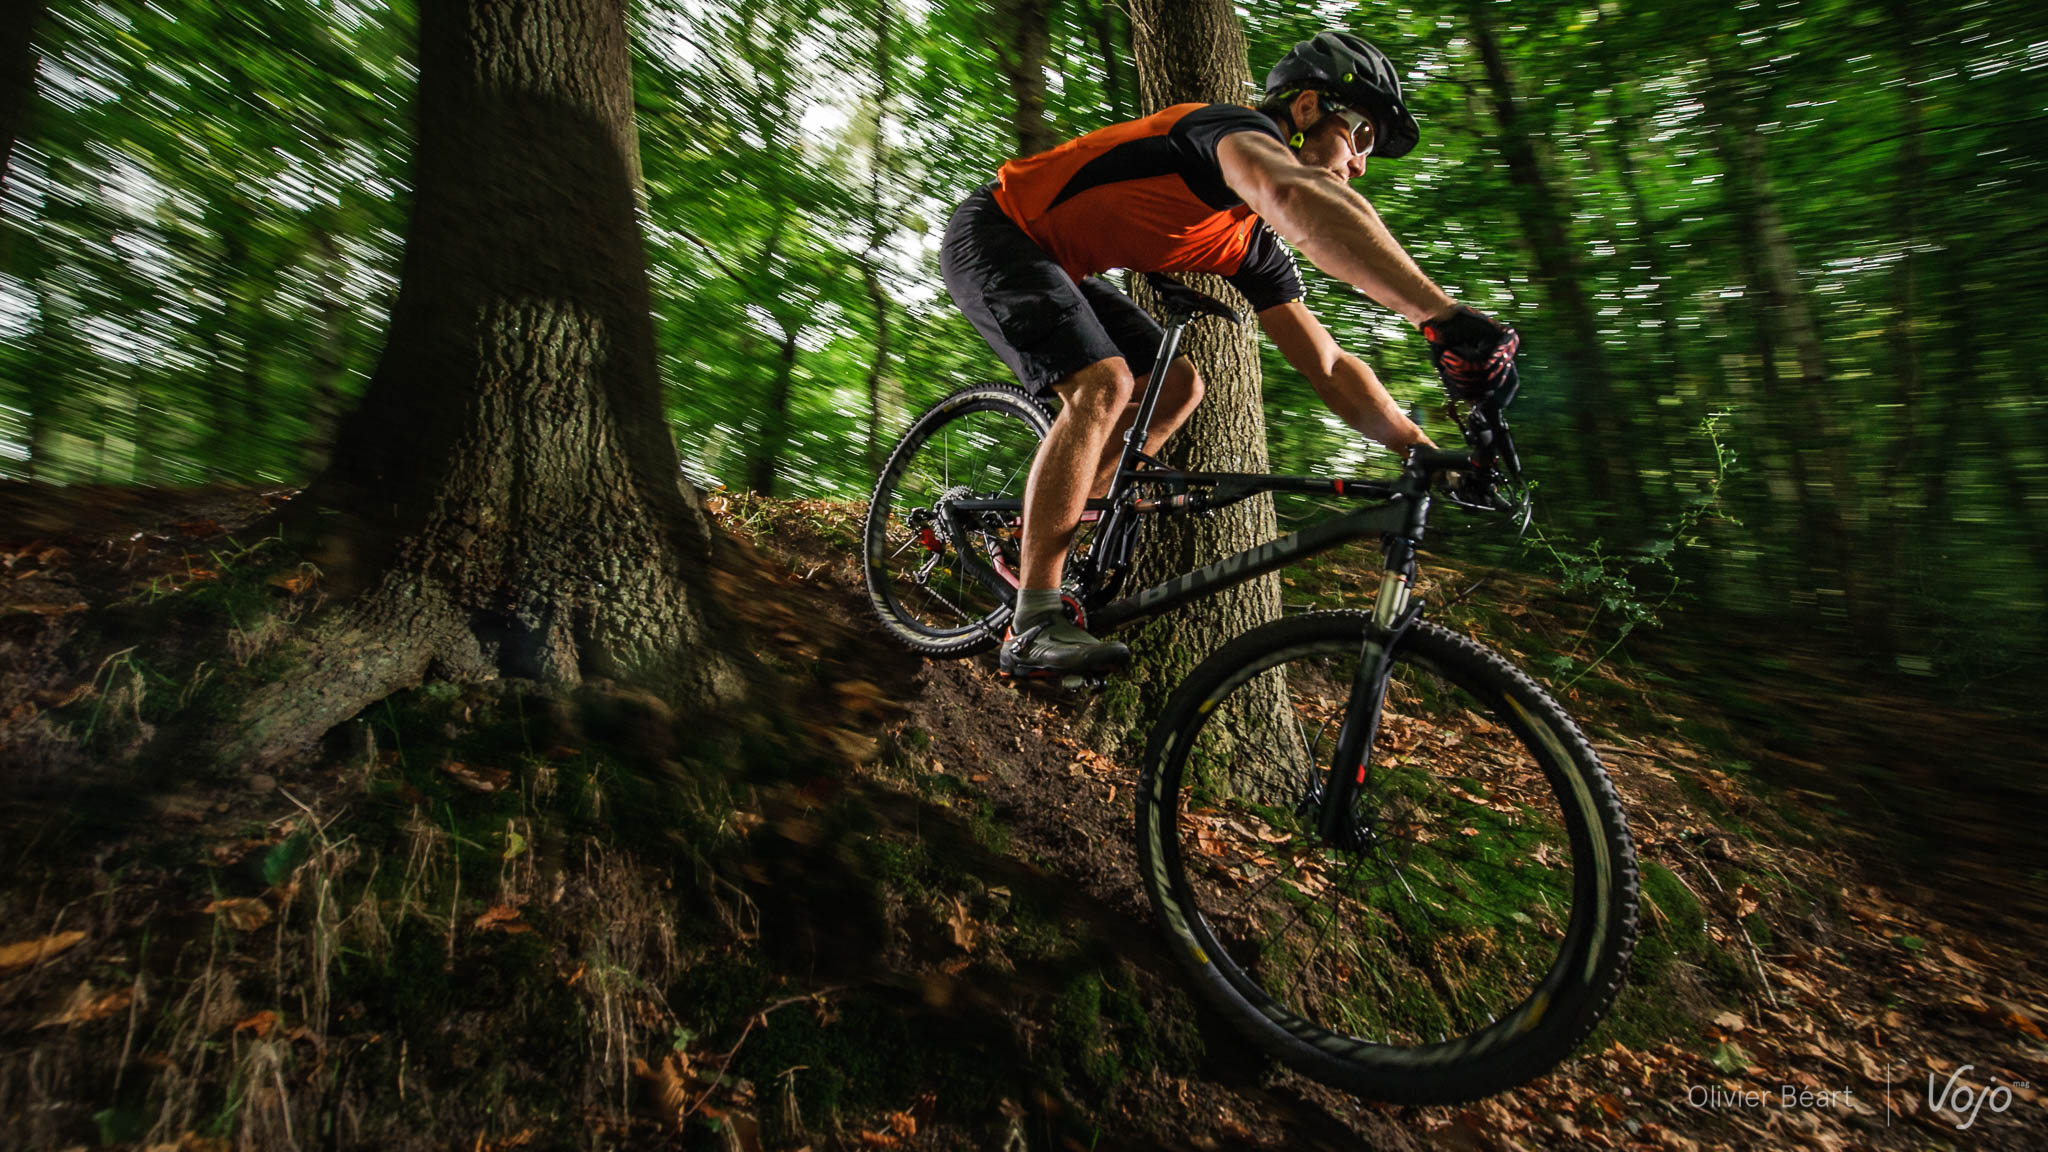 BTwin_Rafal_900s_Action_Copyright_OBeart_VojoMag-3